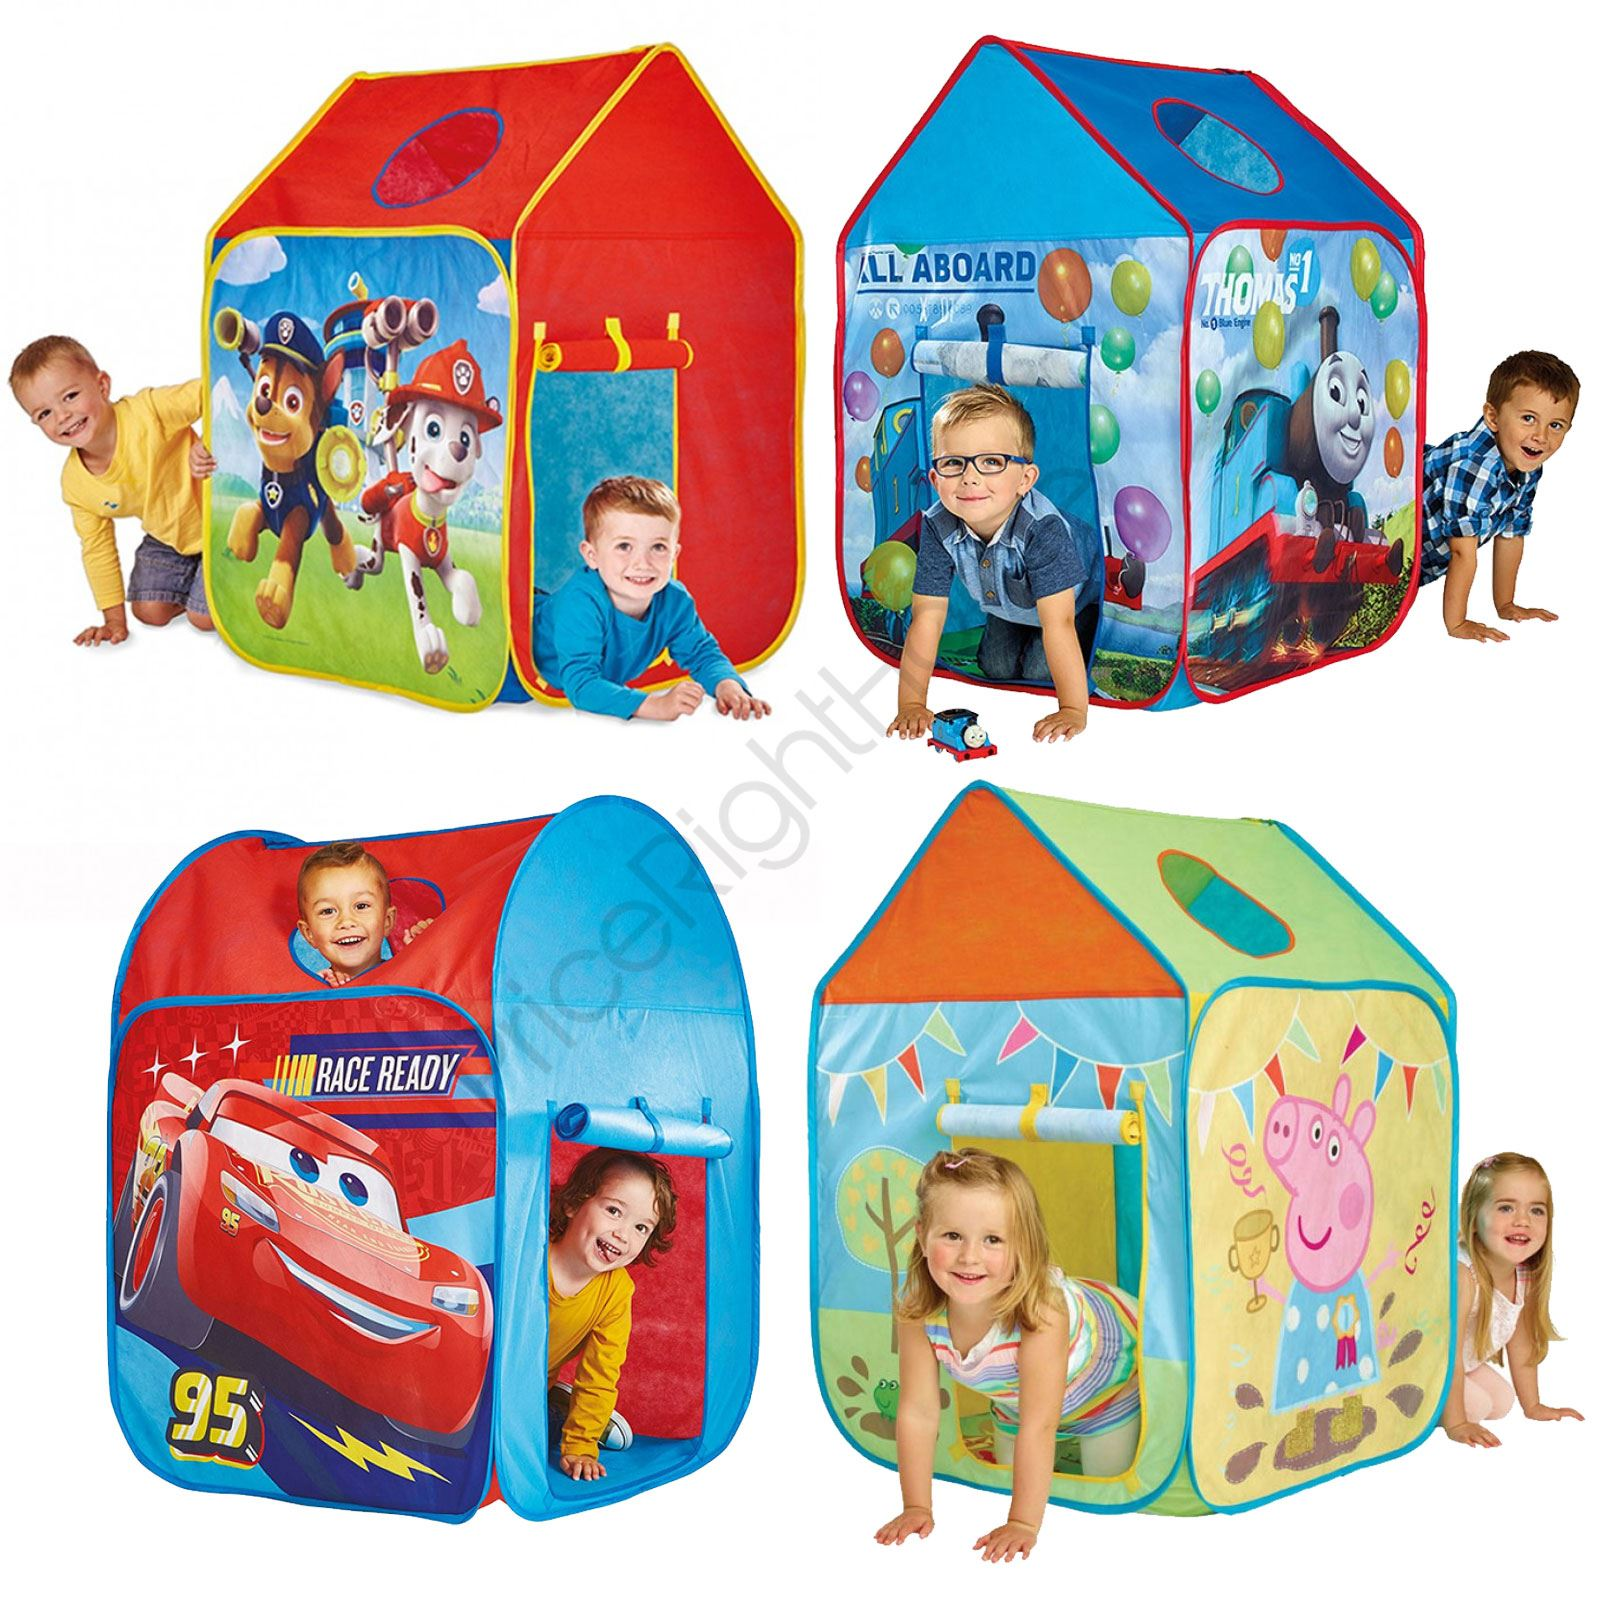 CHARACTER PLAY TENTS PAW PATROL THOMAS DISNEY CARS PEPPA PIG INDOOR OUTDOOR NEW  sc 1 st  eBay & CHARACTER PLAY TENTS PAW PATROL THOMAS DISNEY CARS PEPPA PIG ...